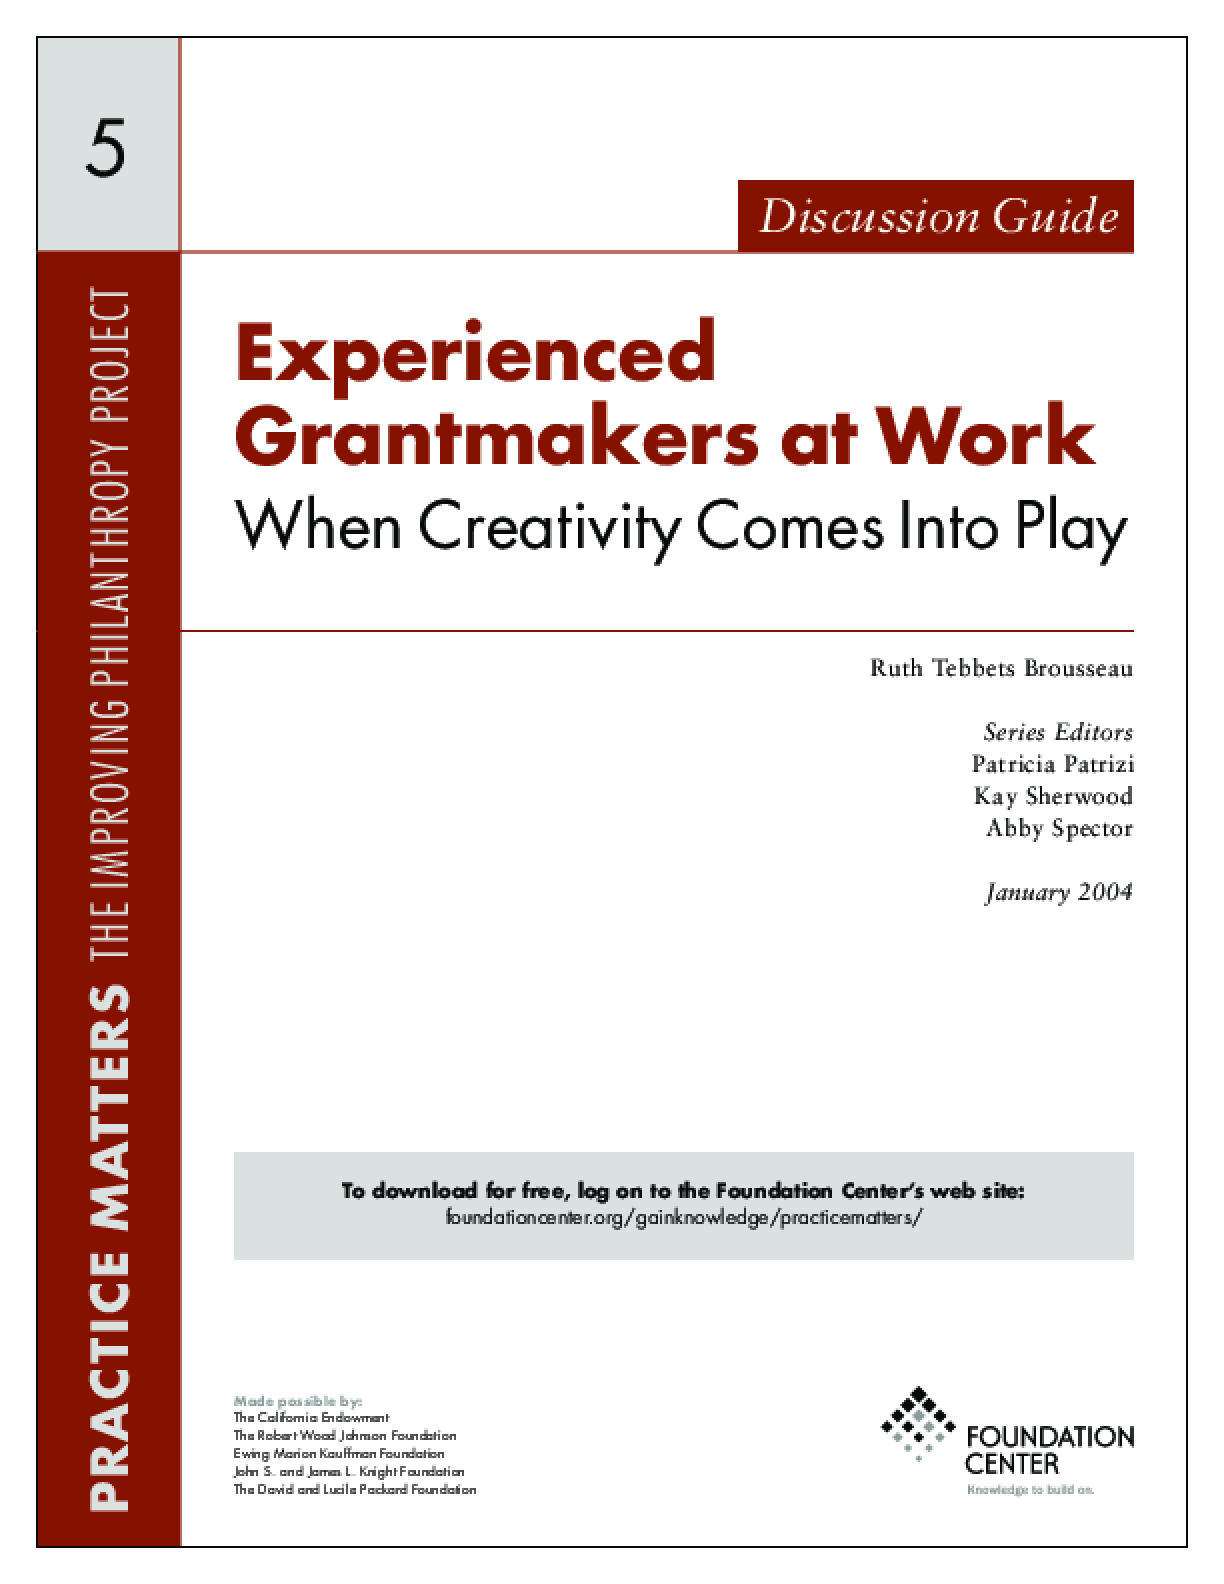 Experienced Grantmakers at Work: When Creativity Comes Into Play - Discussion Guide